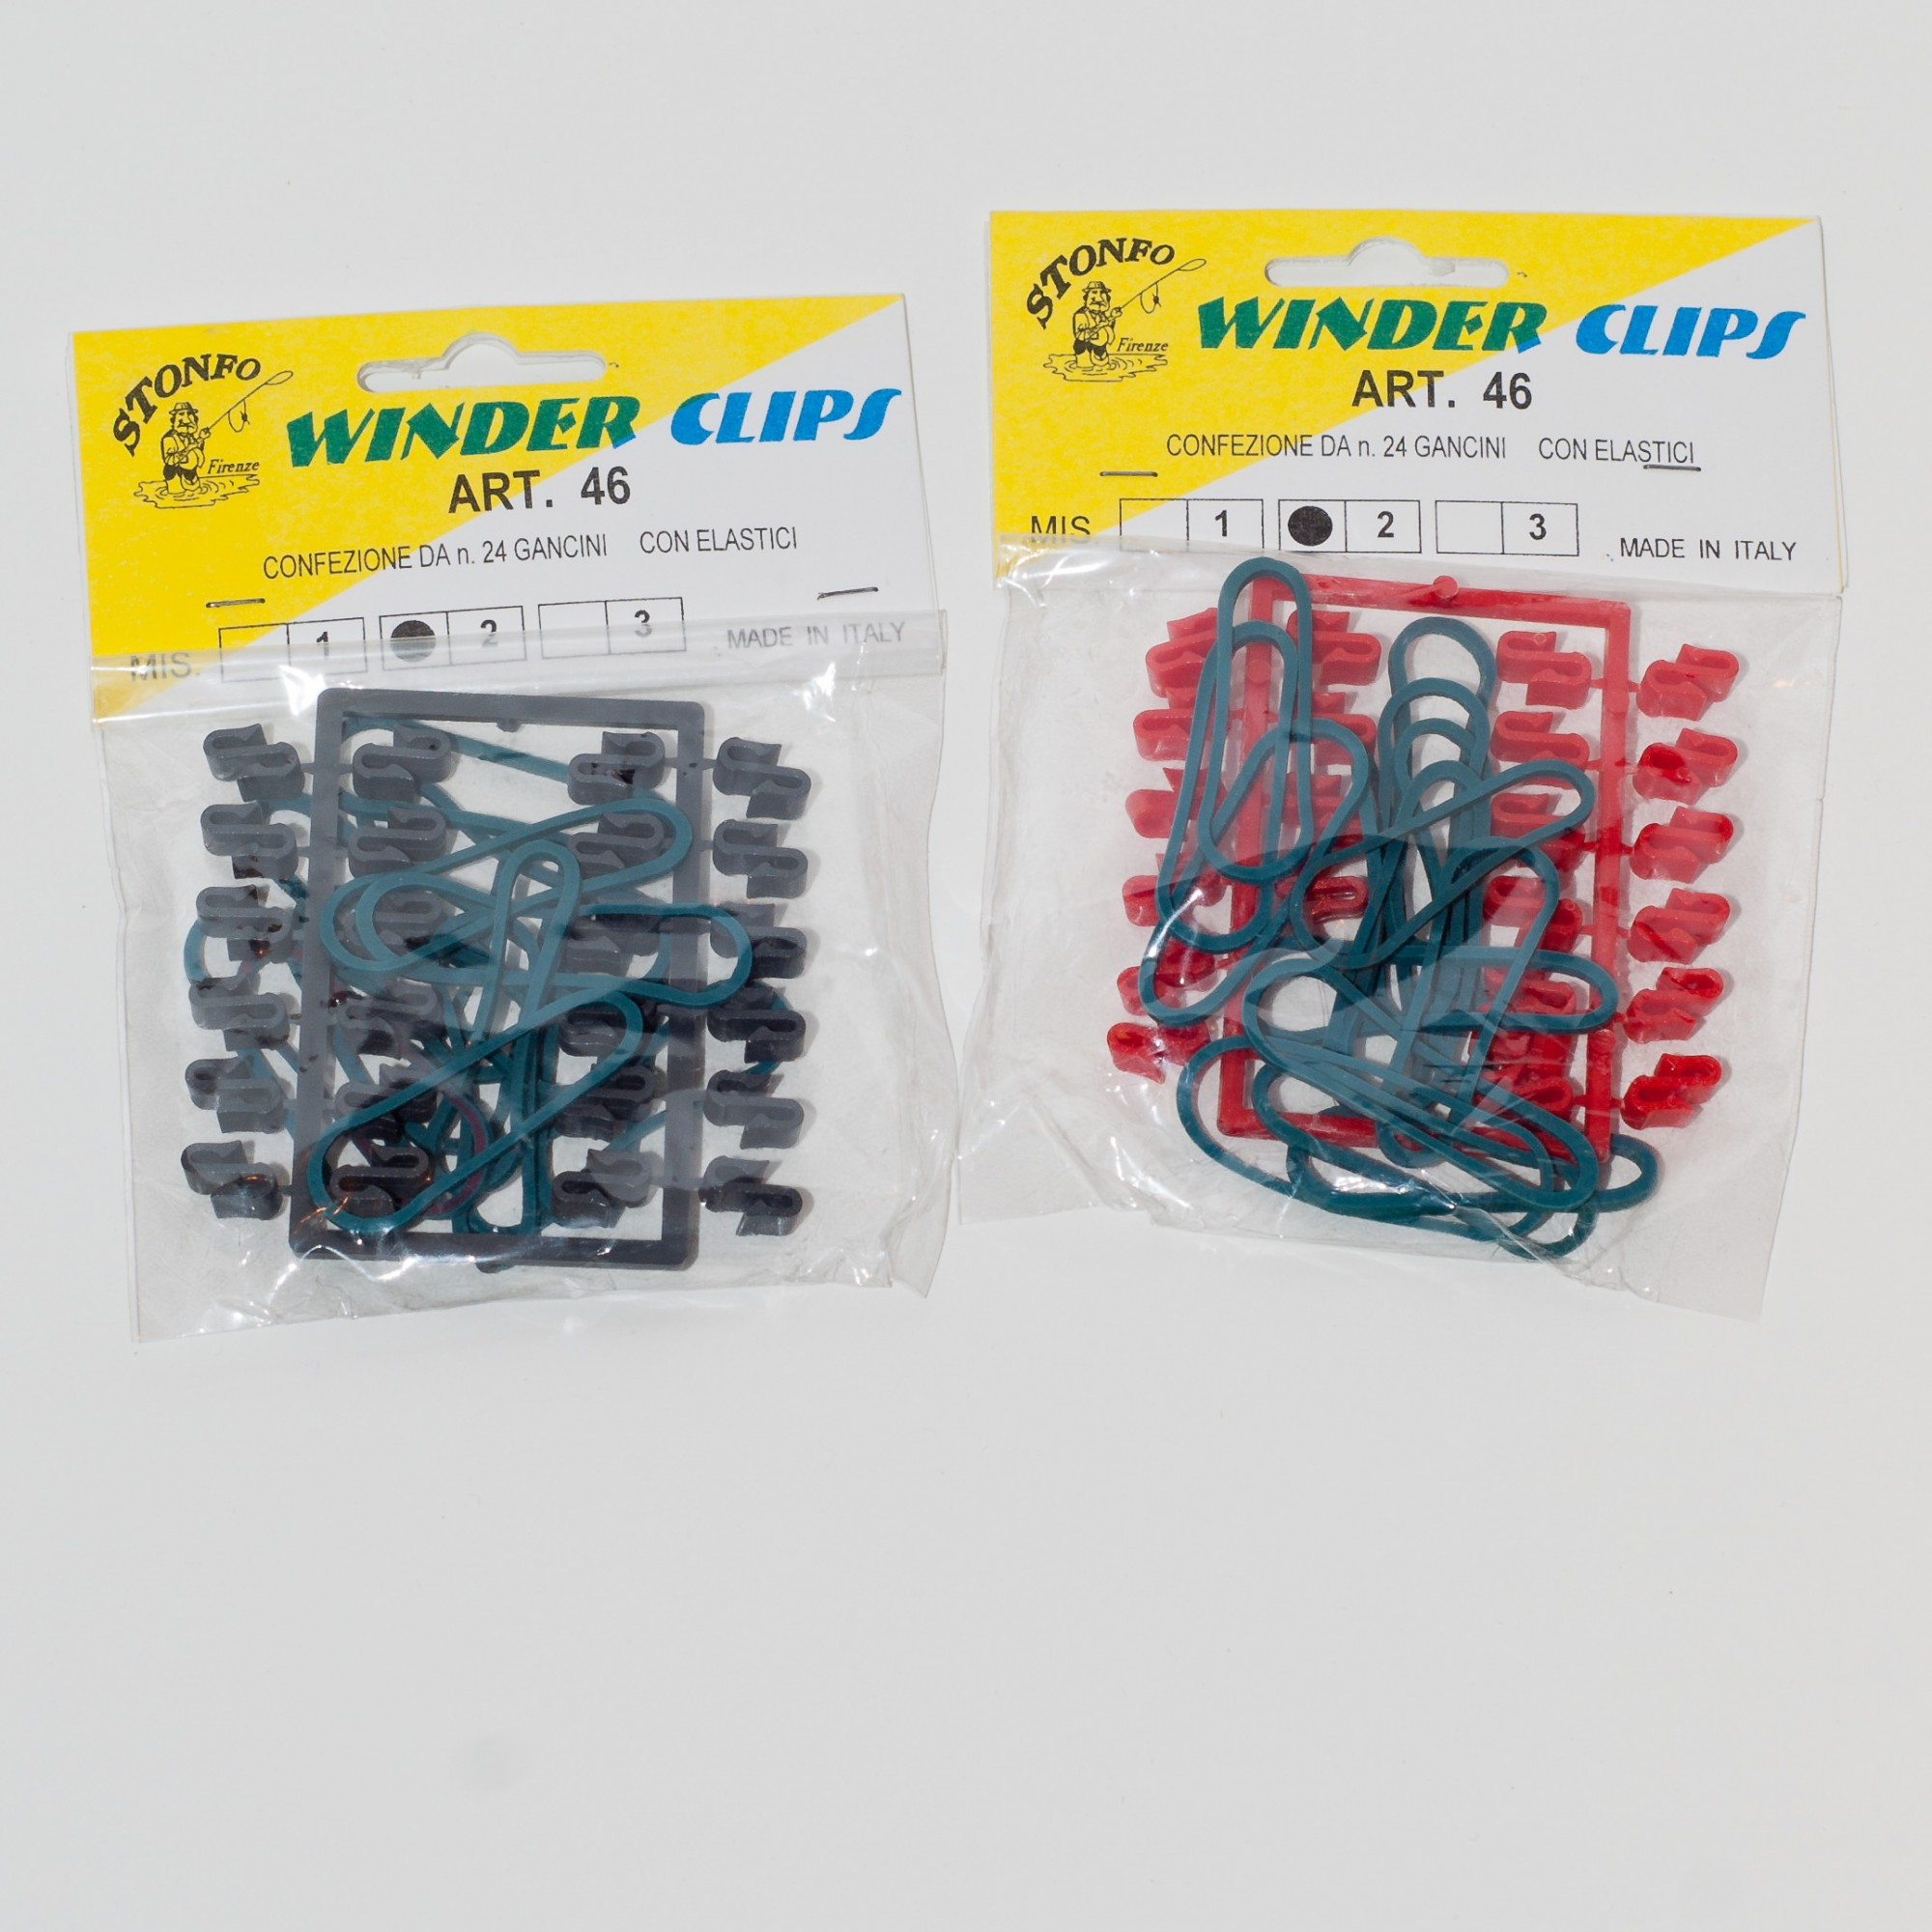 Winder clips